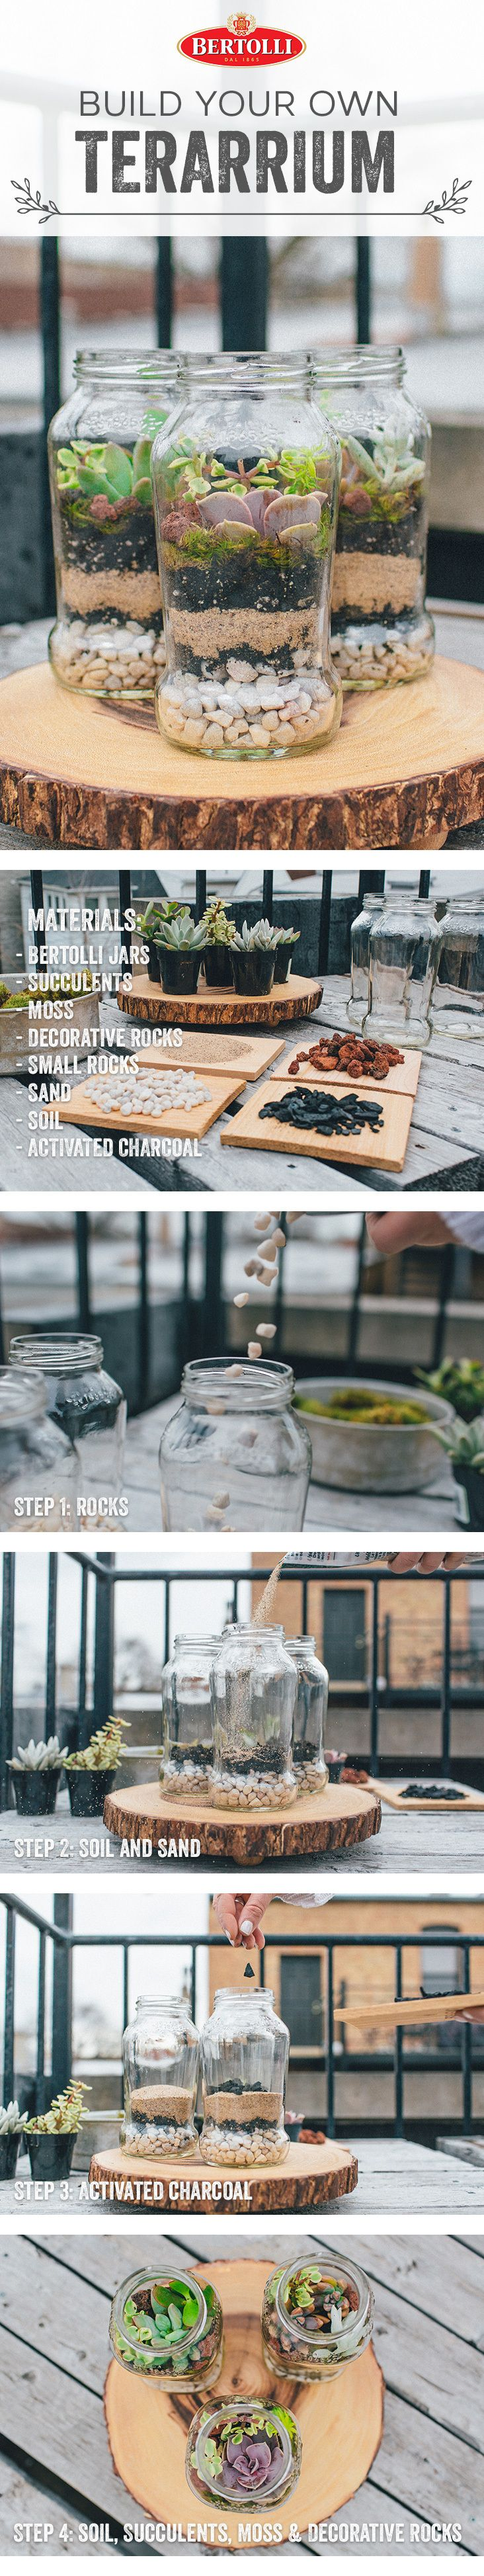 Terrariums are popular home décor, but can be a bit pricey. For a DIY alternative, thoroughly clean and repurpose a few Bertolli® bottles by layering lava rock, charcoal, topsoil and succulents (available at your local garden shop) inside each one. Create 2-3 terrariums to put on your kitchen windowsill or an accent shelf.